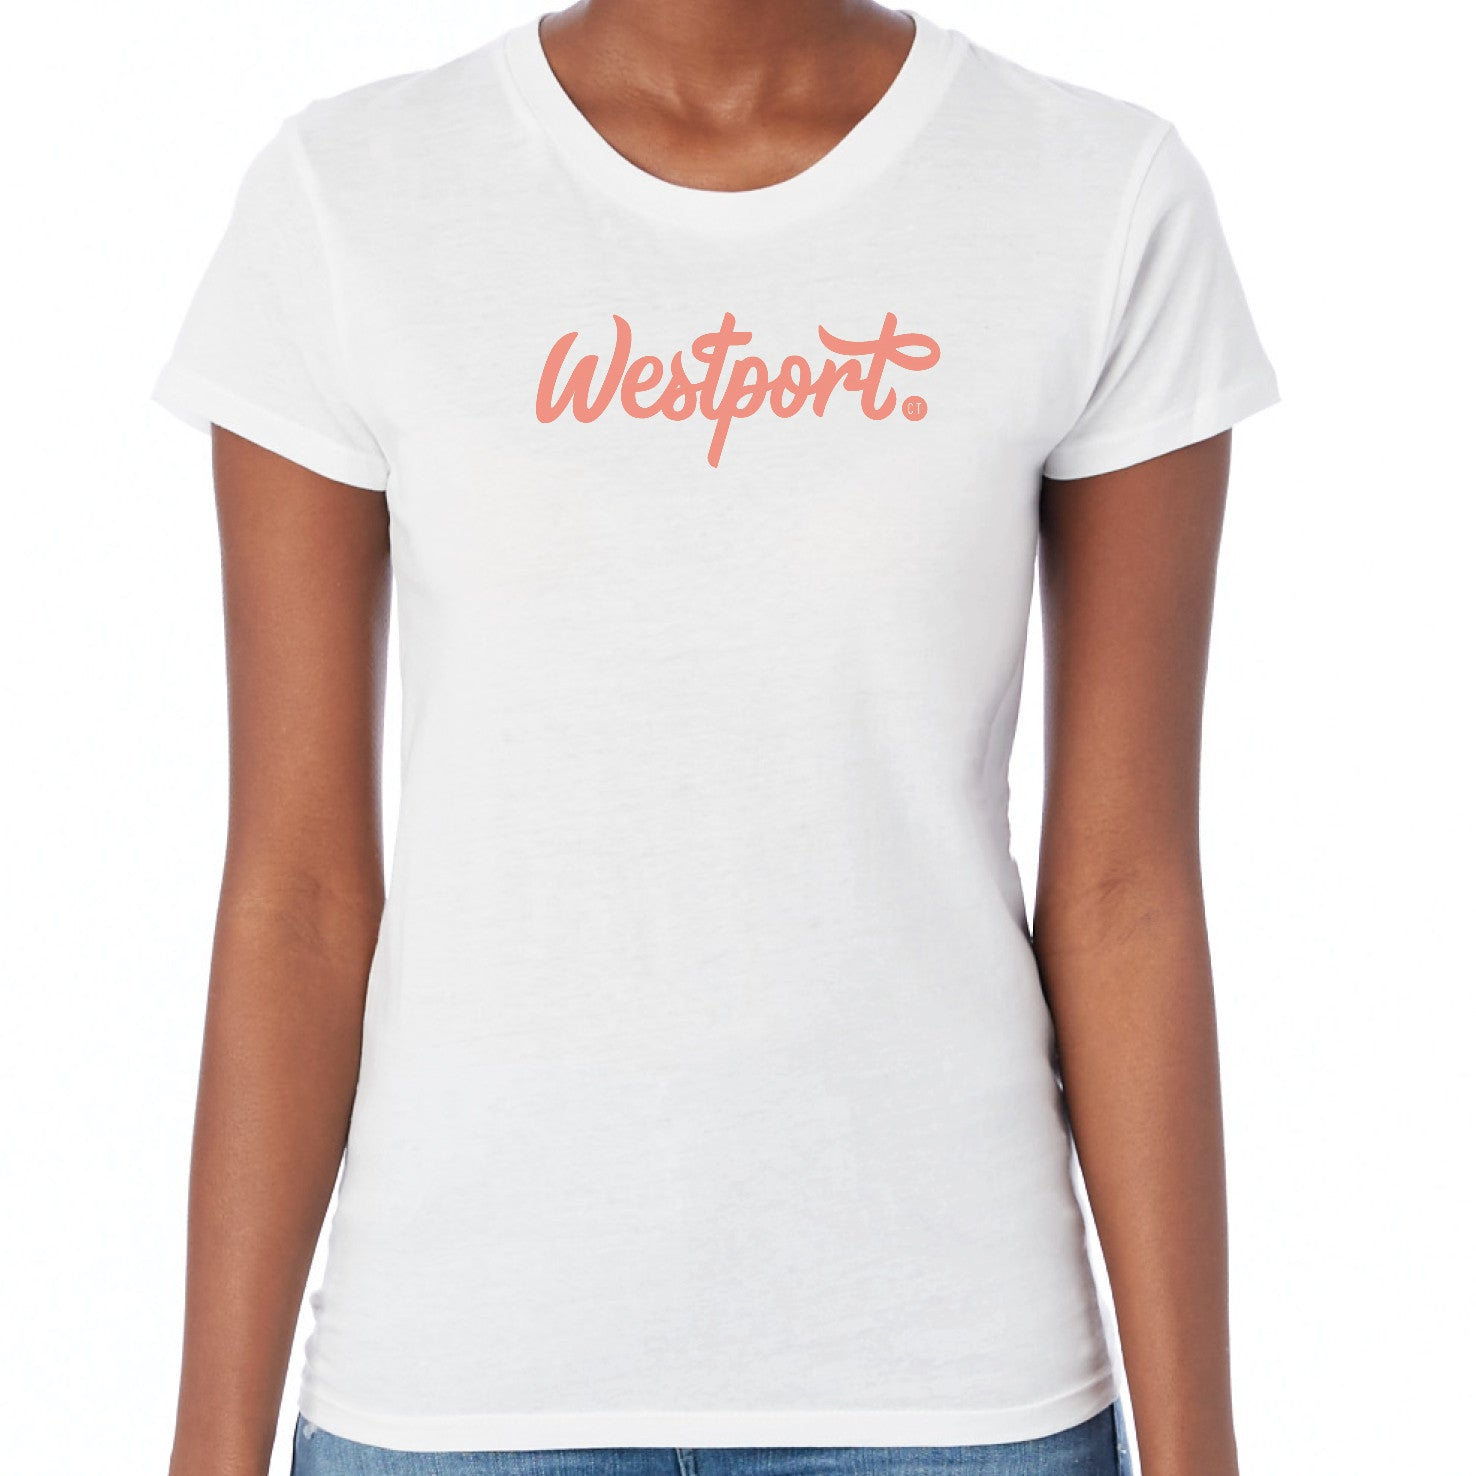 Westport T-shirt by Townee - Townee Tee (front)